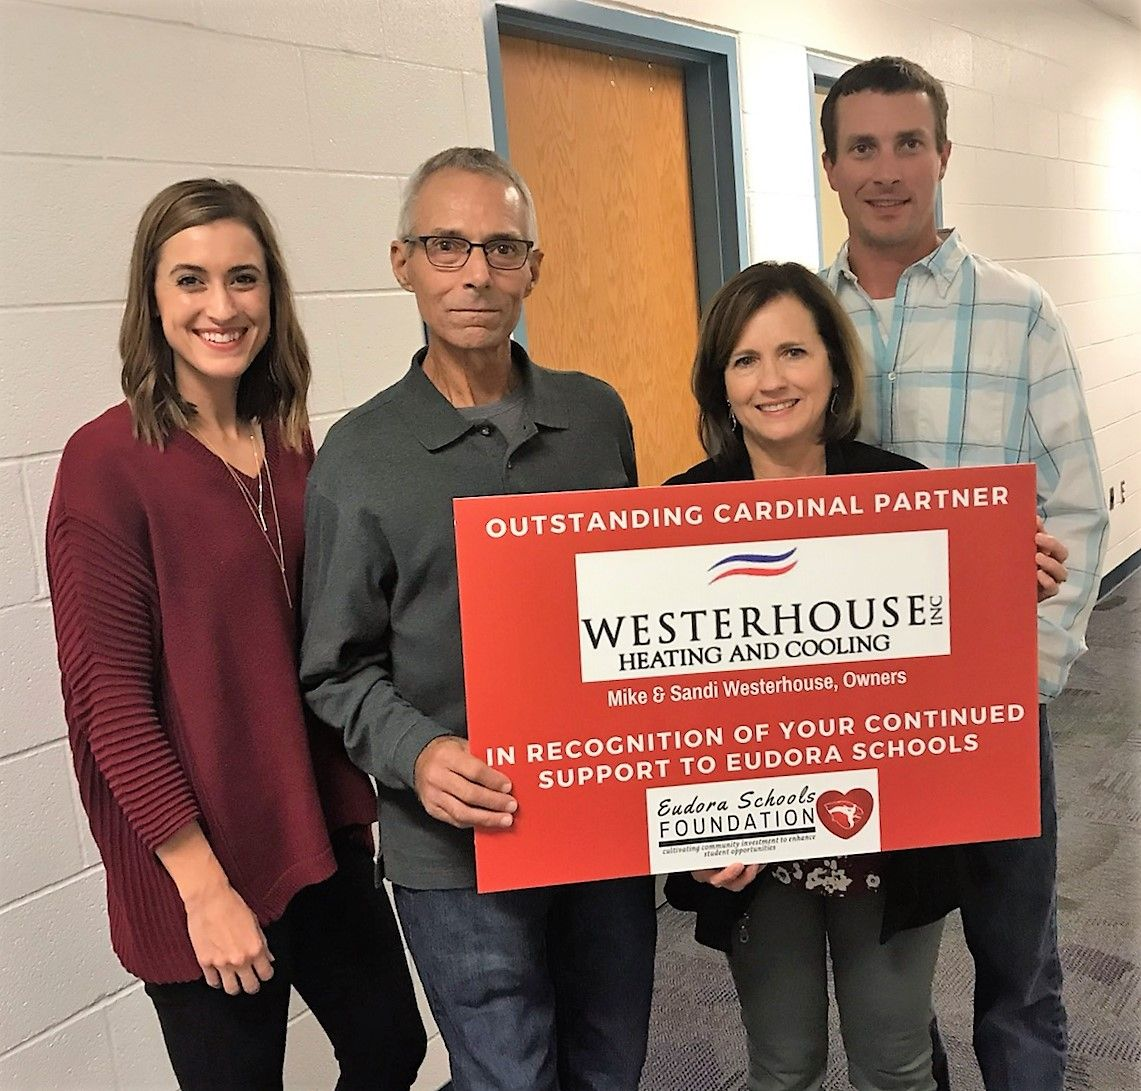 Congratulations to Westerhouse Heating & Cooling. -  2019 Eudora Schools Foundation Outstanding Cardinal Partner.